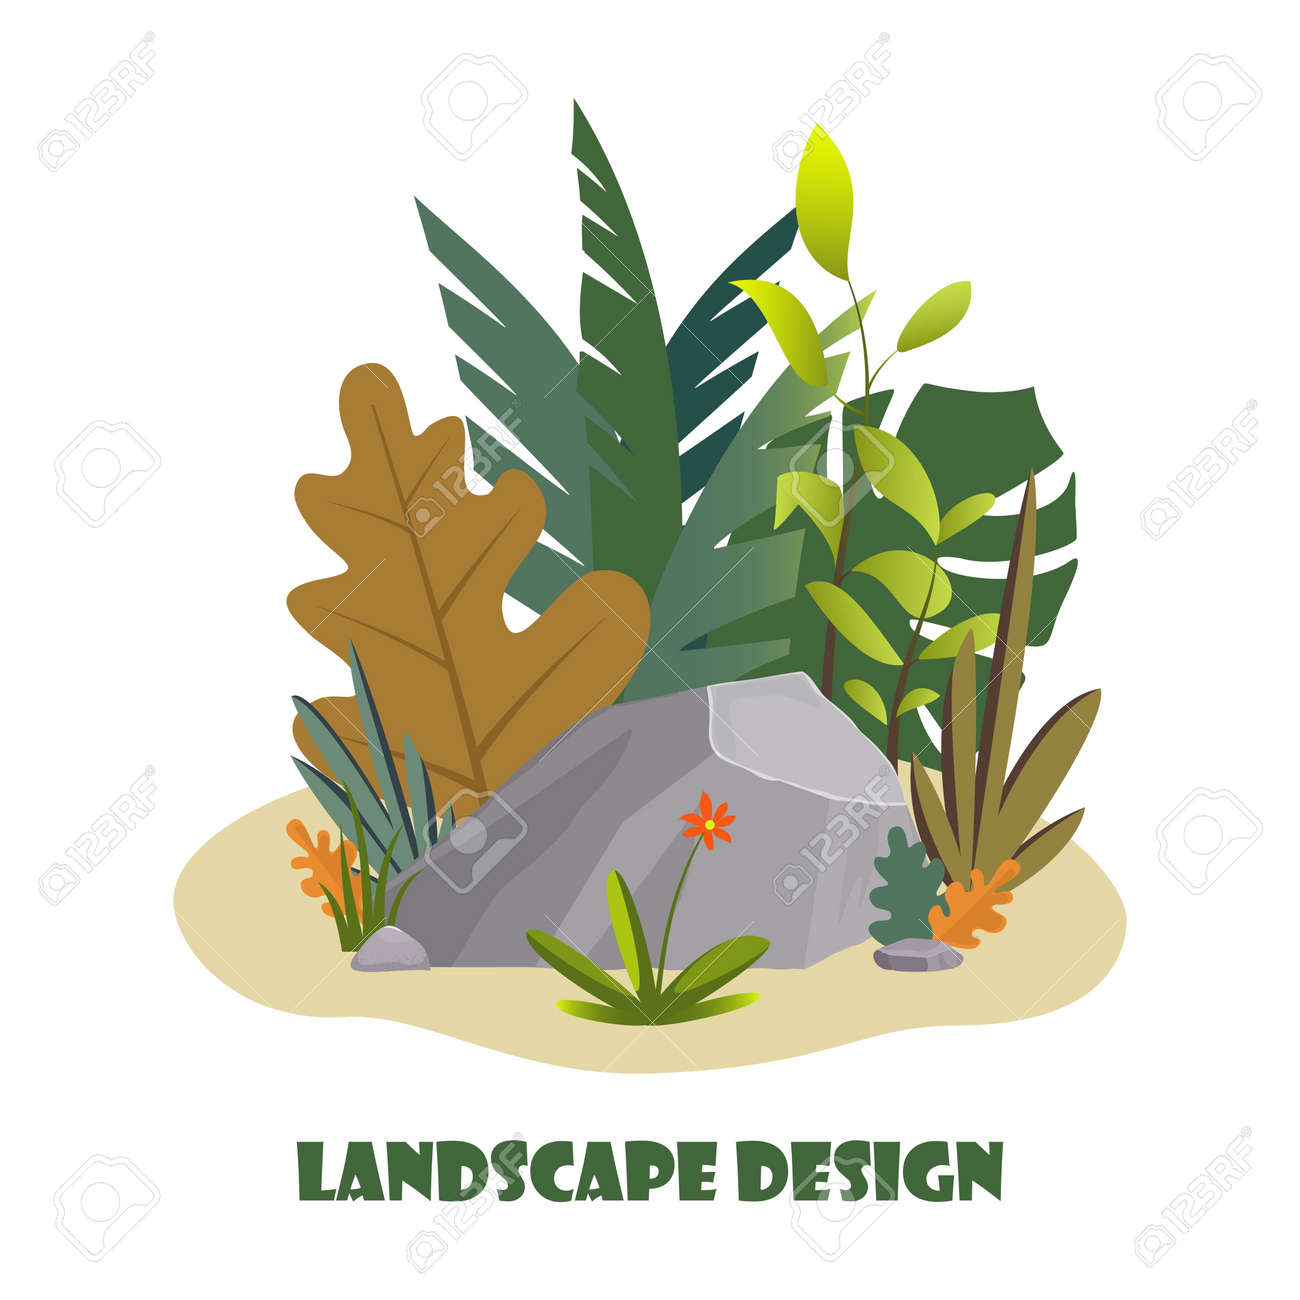 Landscape Design Composition With Plant And Stones Cute Floral